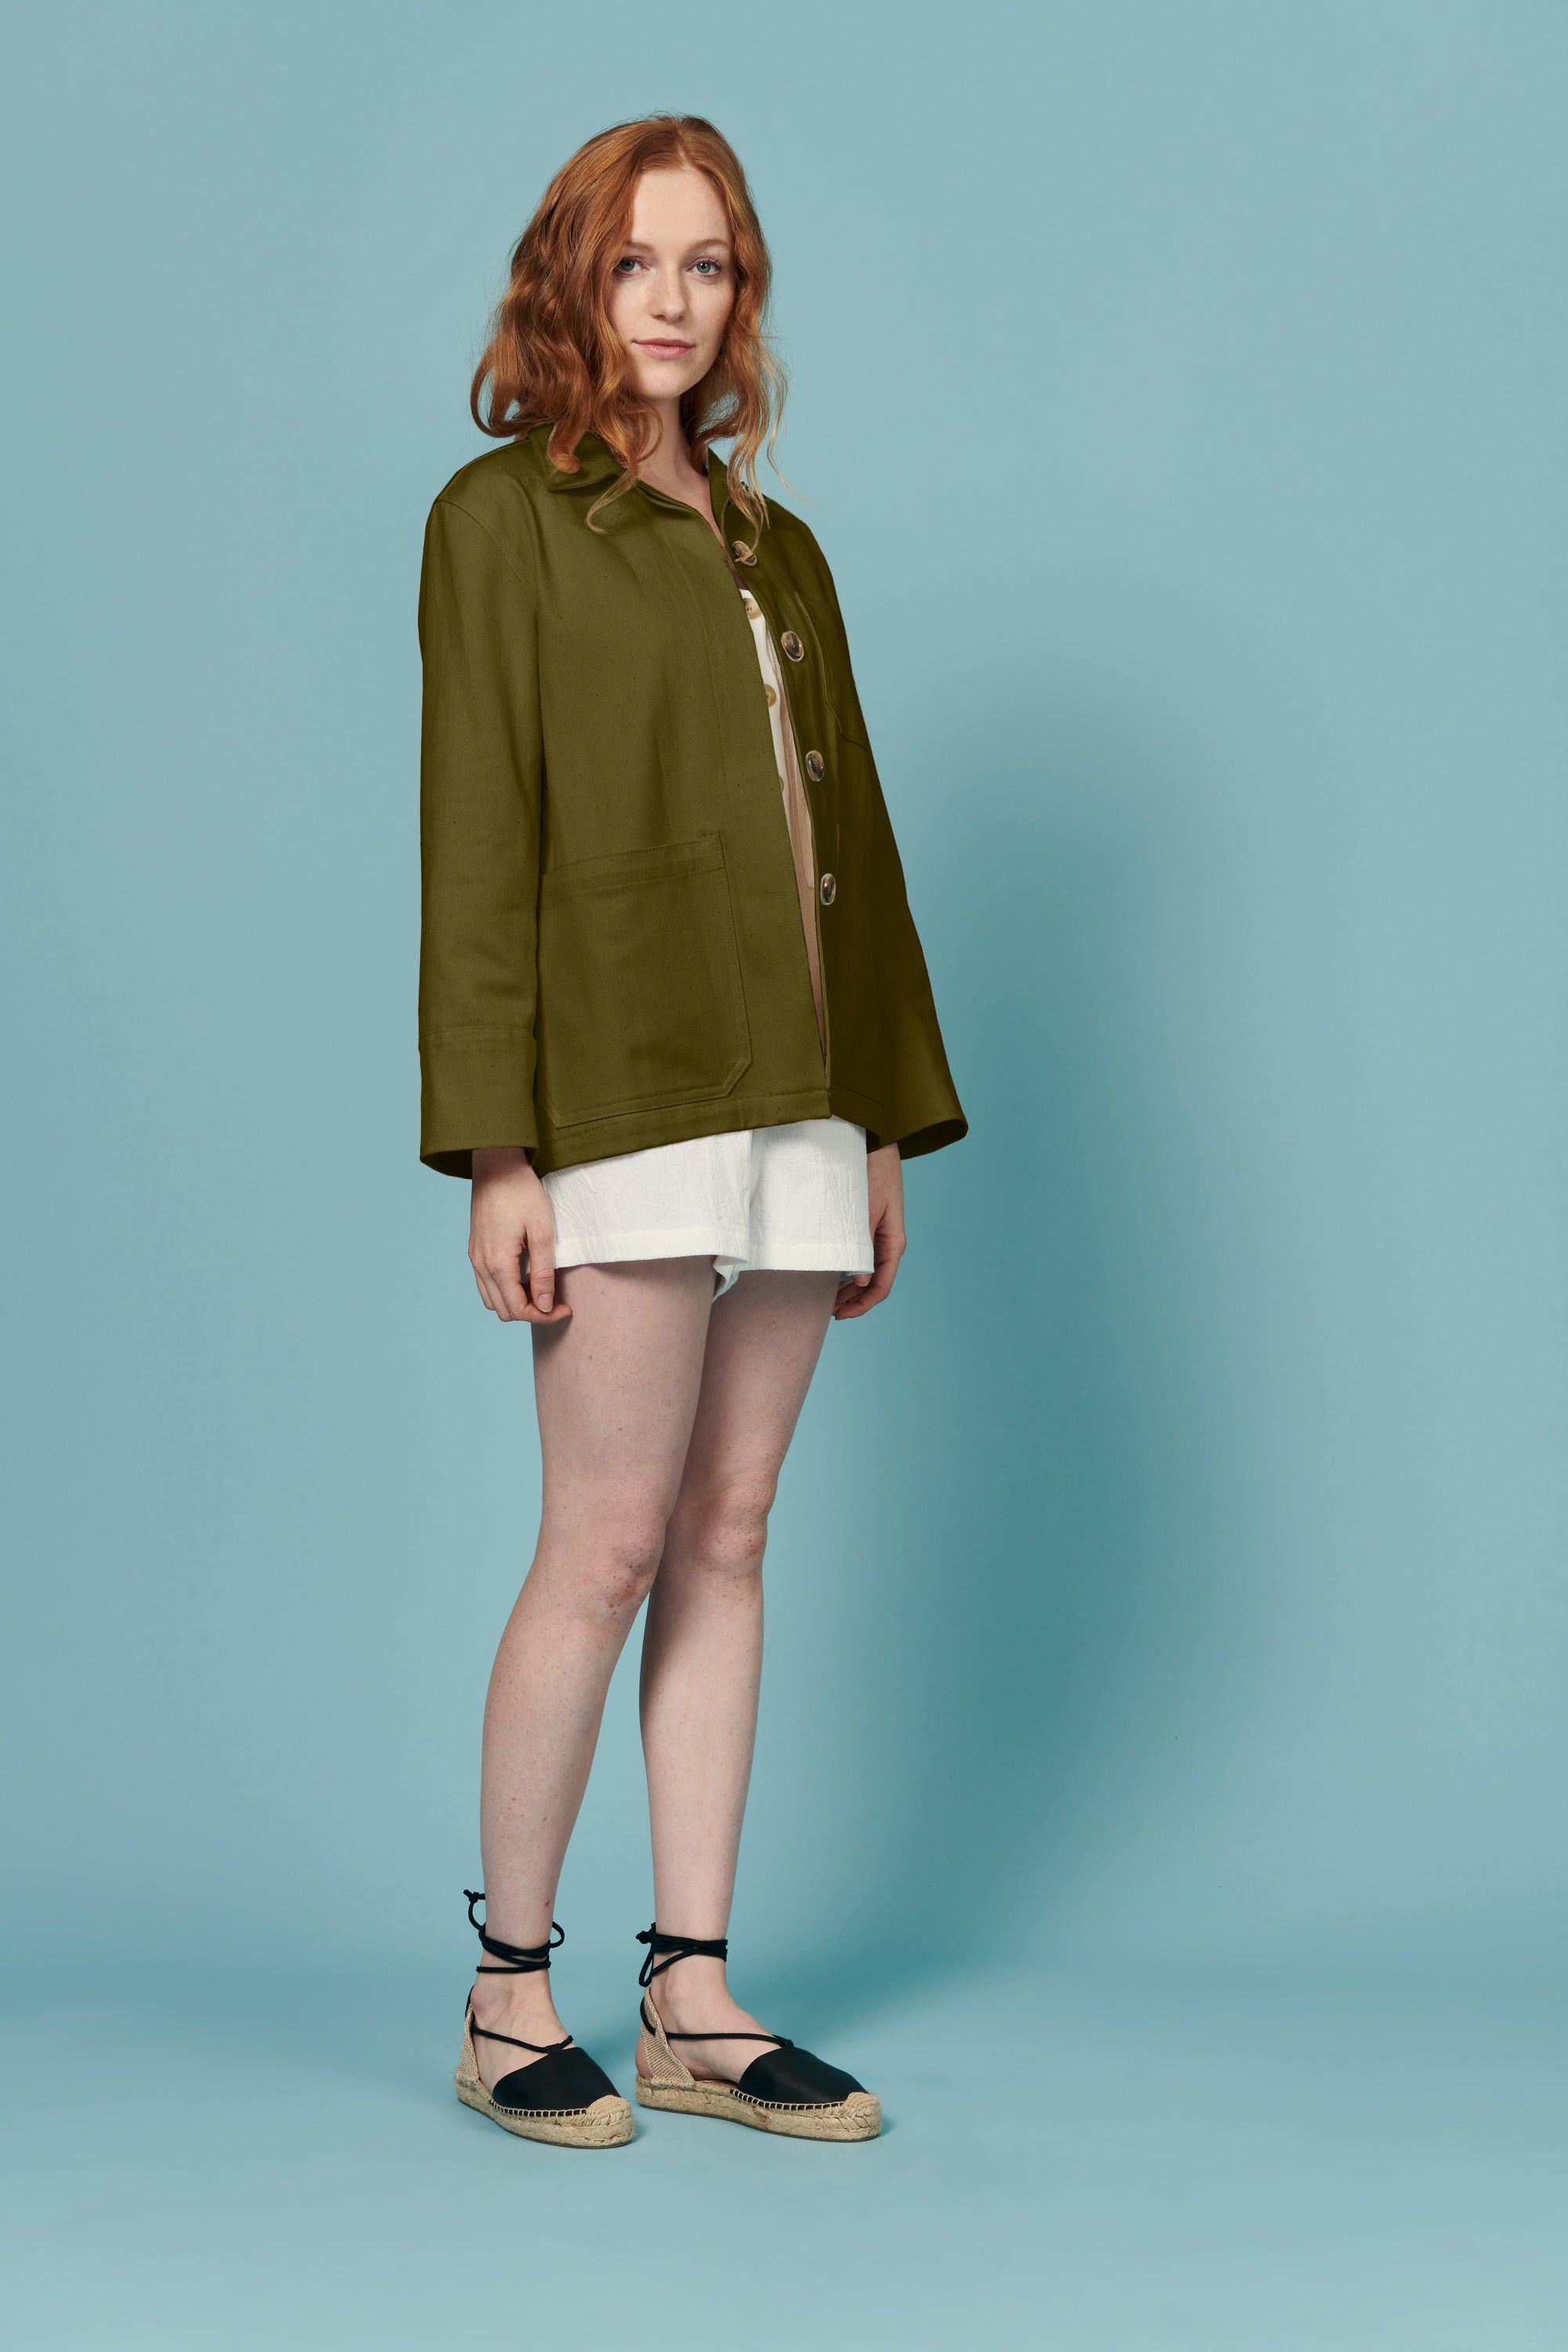 a20bb8a0703023 Jordan Jacket in Olive · Whimsy   Row · Sustainable Clothing ...